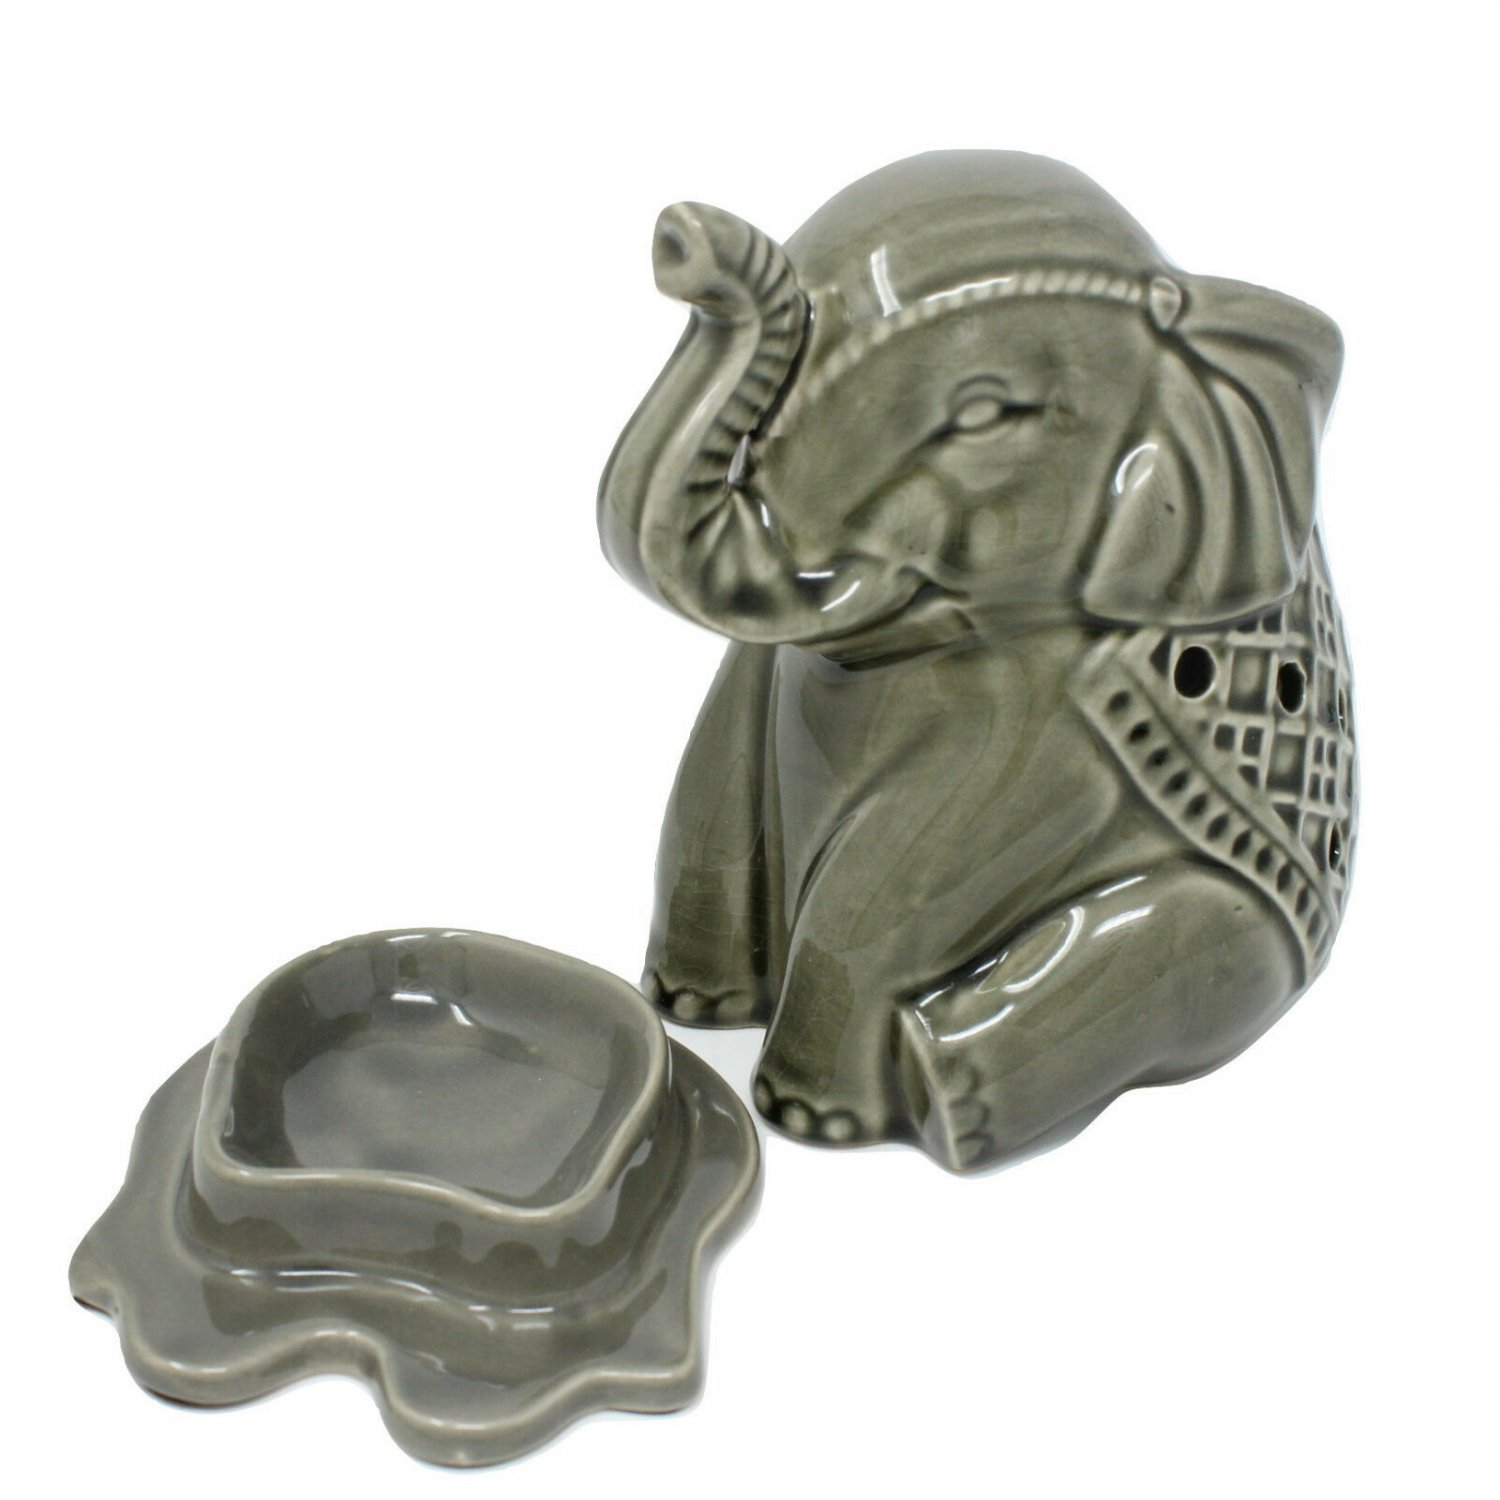 Better Homes & Gardens Wax Warmer Elephant Electric Inverted Tray